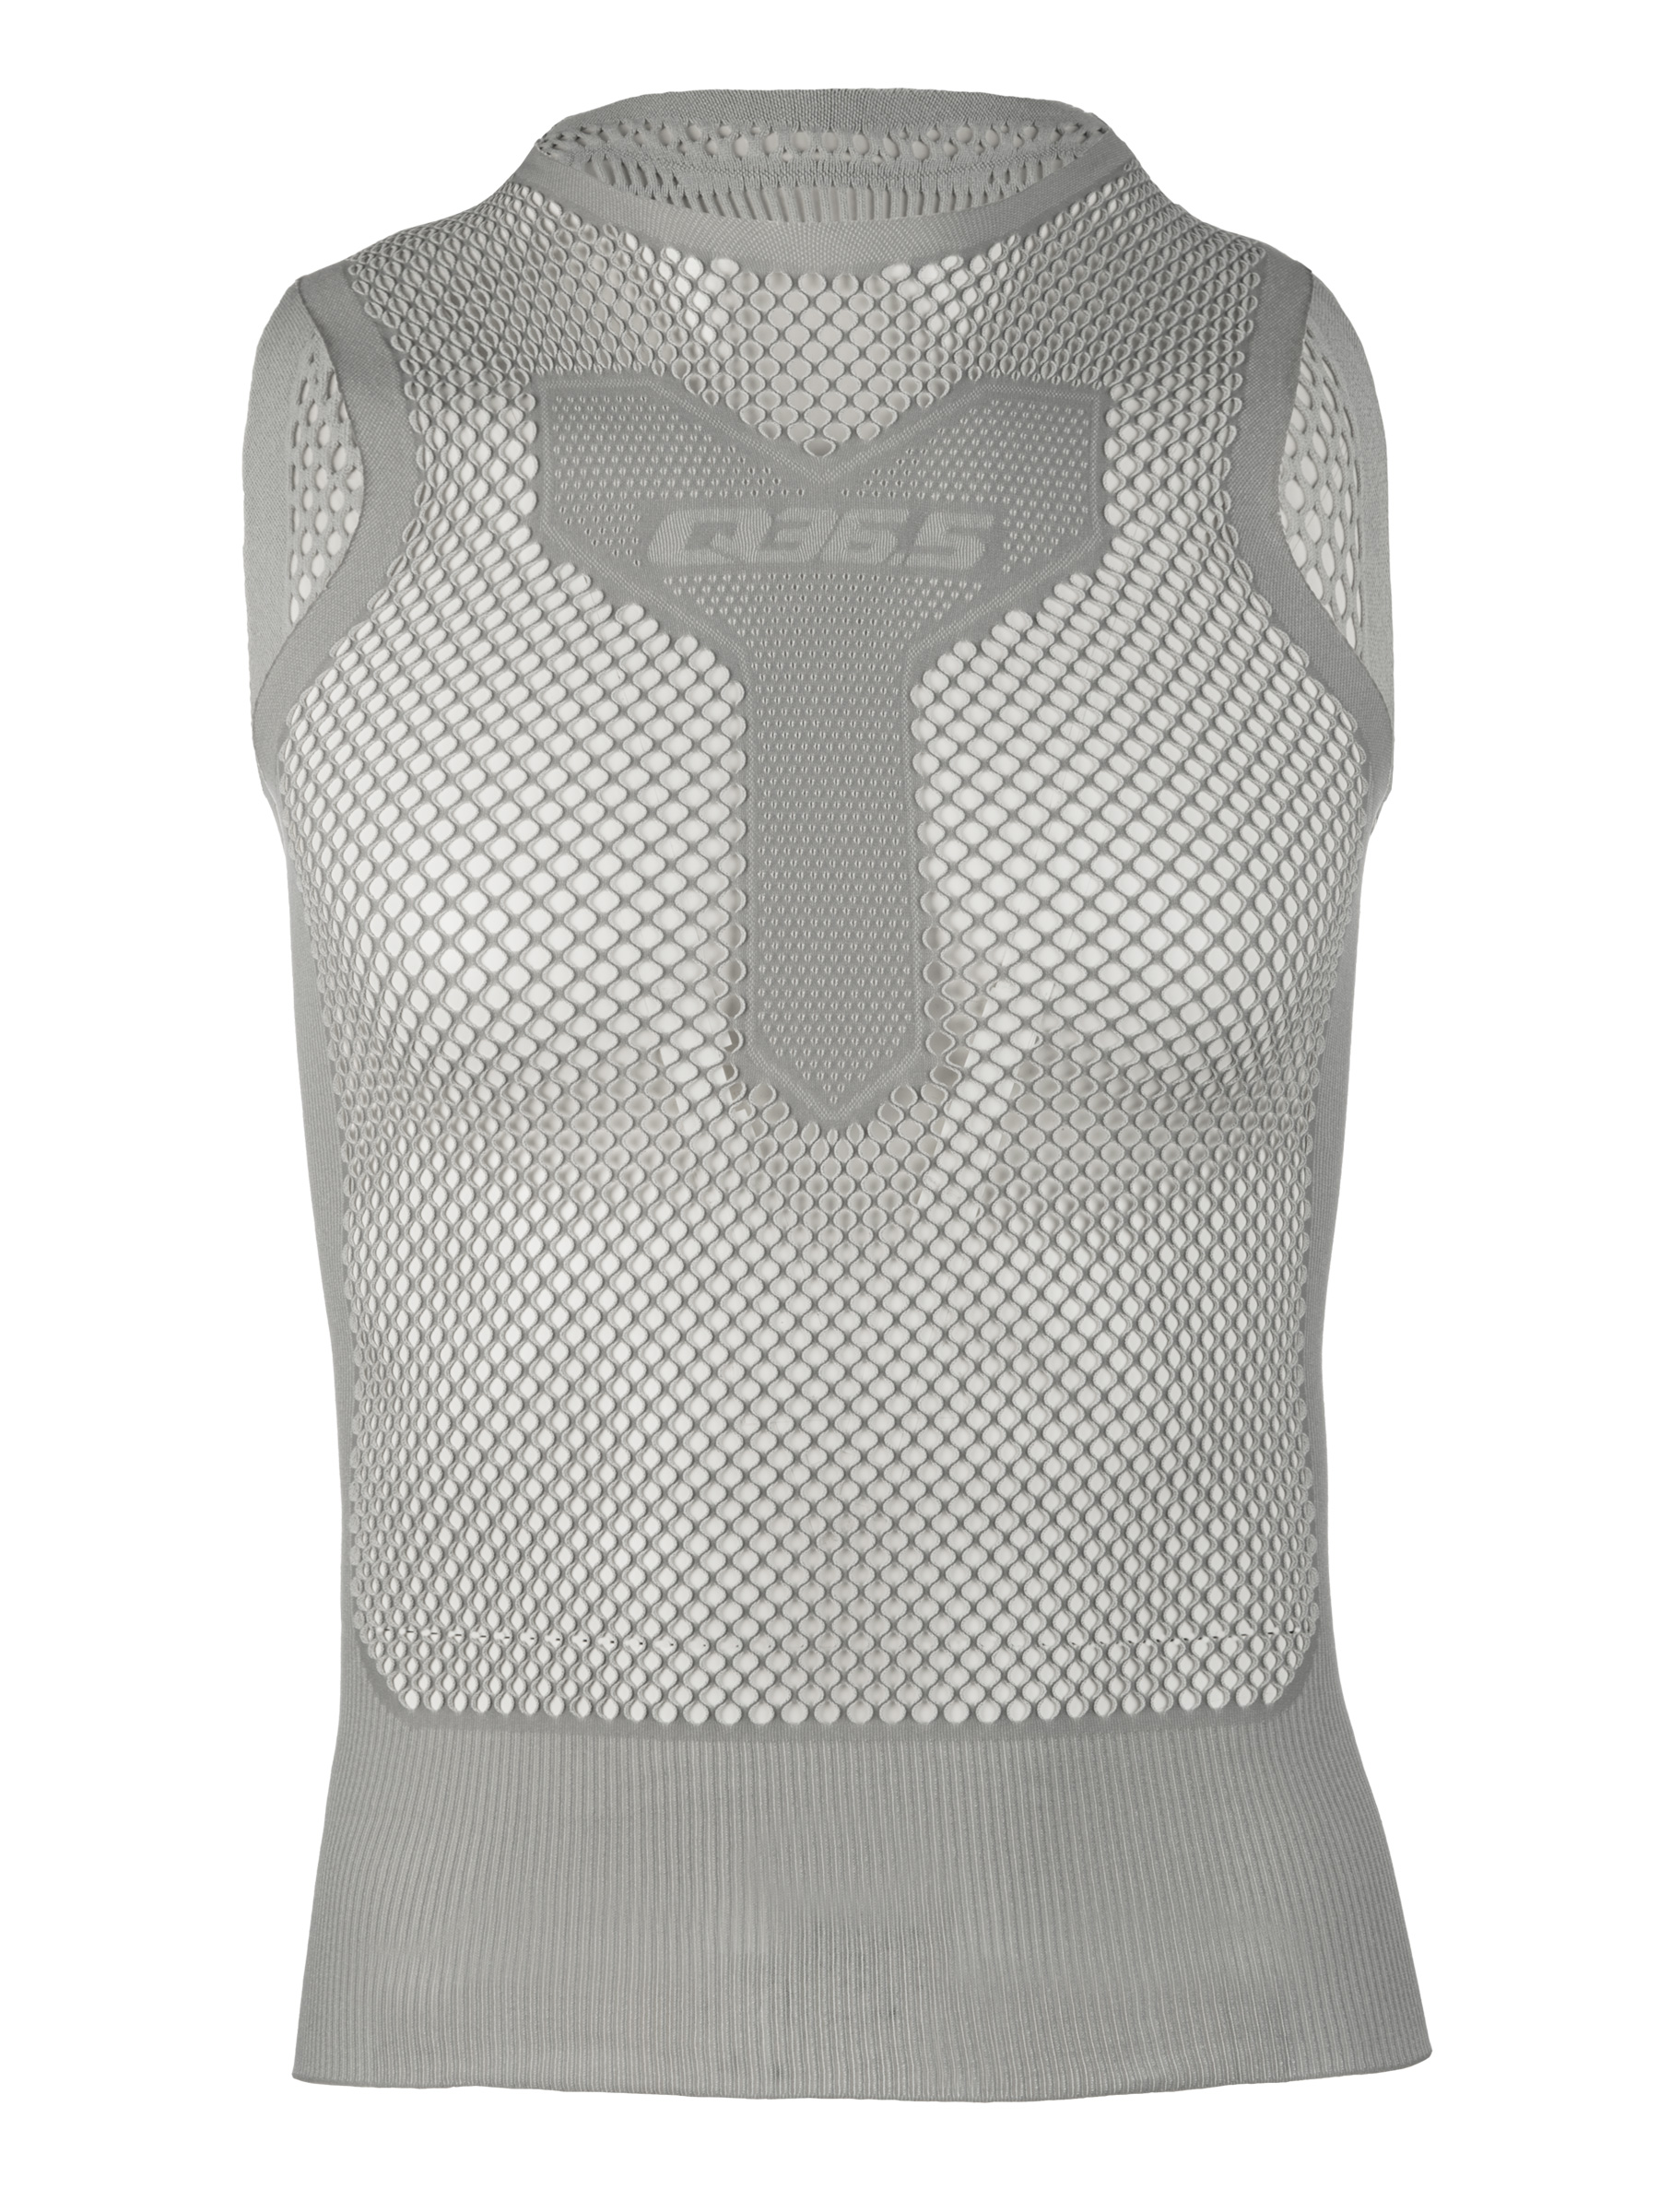 Intimo tecnico base layer mesh Q36.5